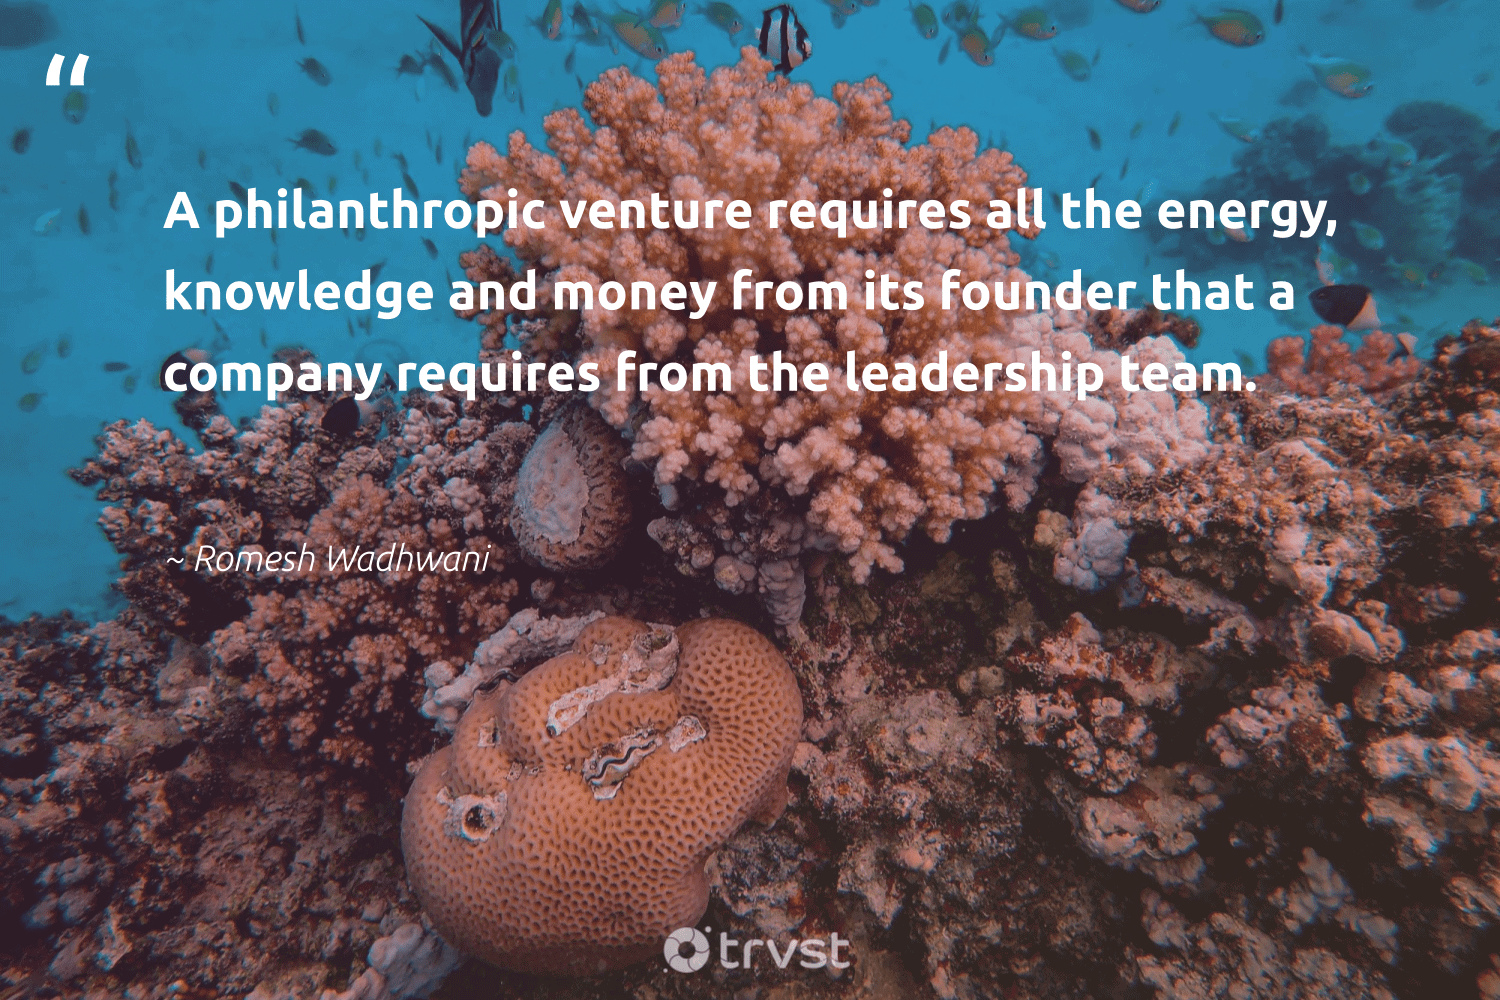 """""""A philanthropic venture requires all the energy, knowledge and money from its founder that a company requires from the leadership team.""""  - Romesh Wadhwani #trvst #quotes #energy #leadership #philanthropic #leadershipskills #togetherwecan #nevergiveup #planetearthfirst #leadershipdevelopment #itscooltobekind #futureofwork"""